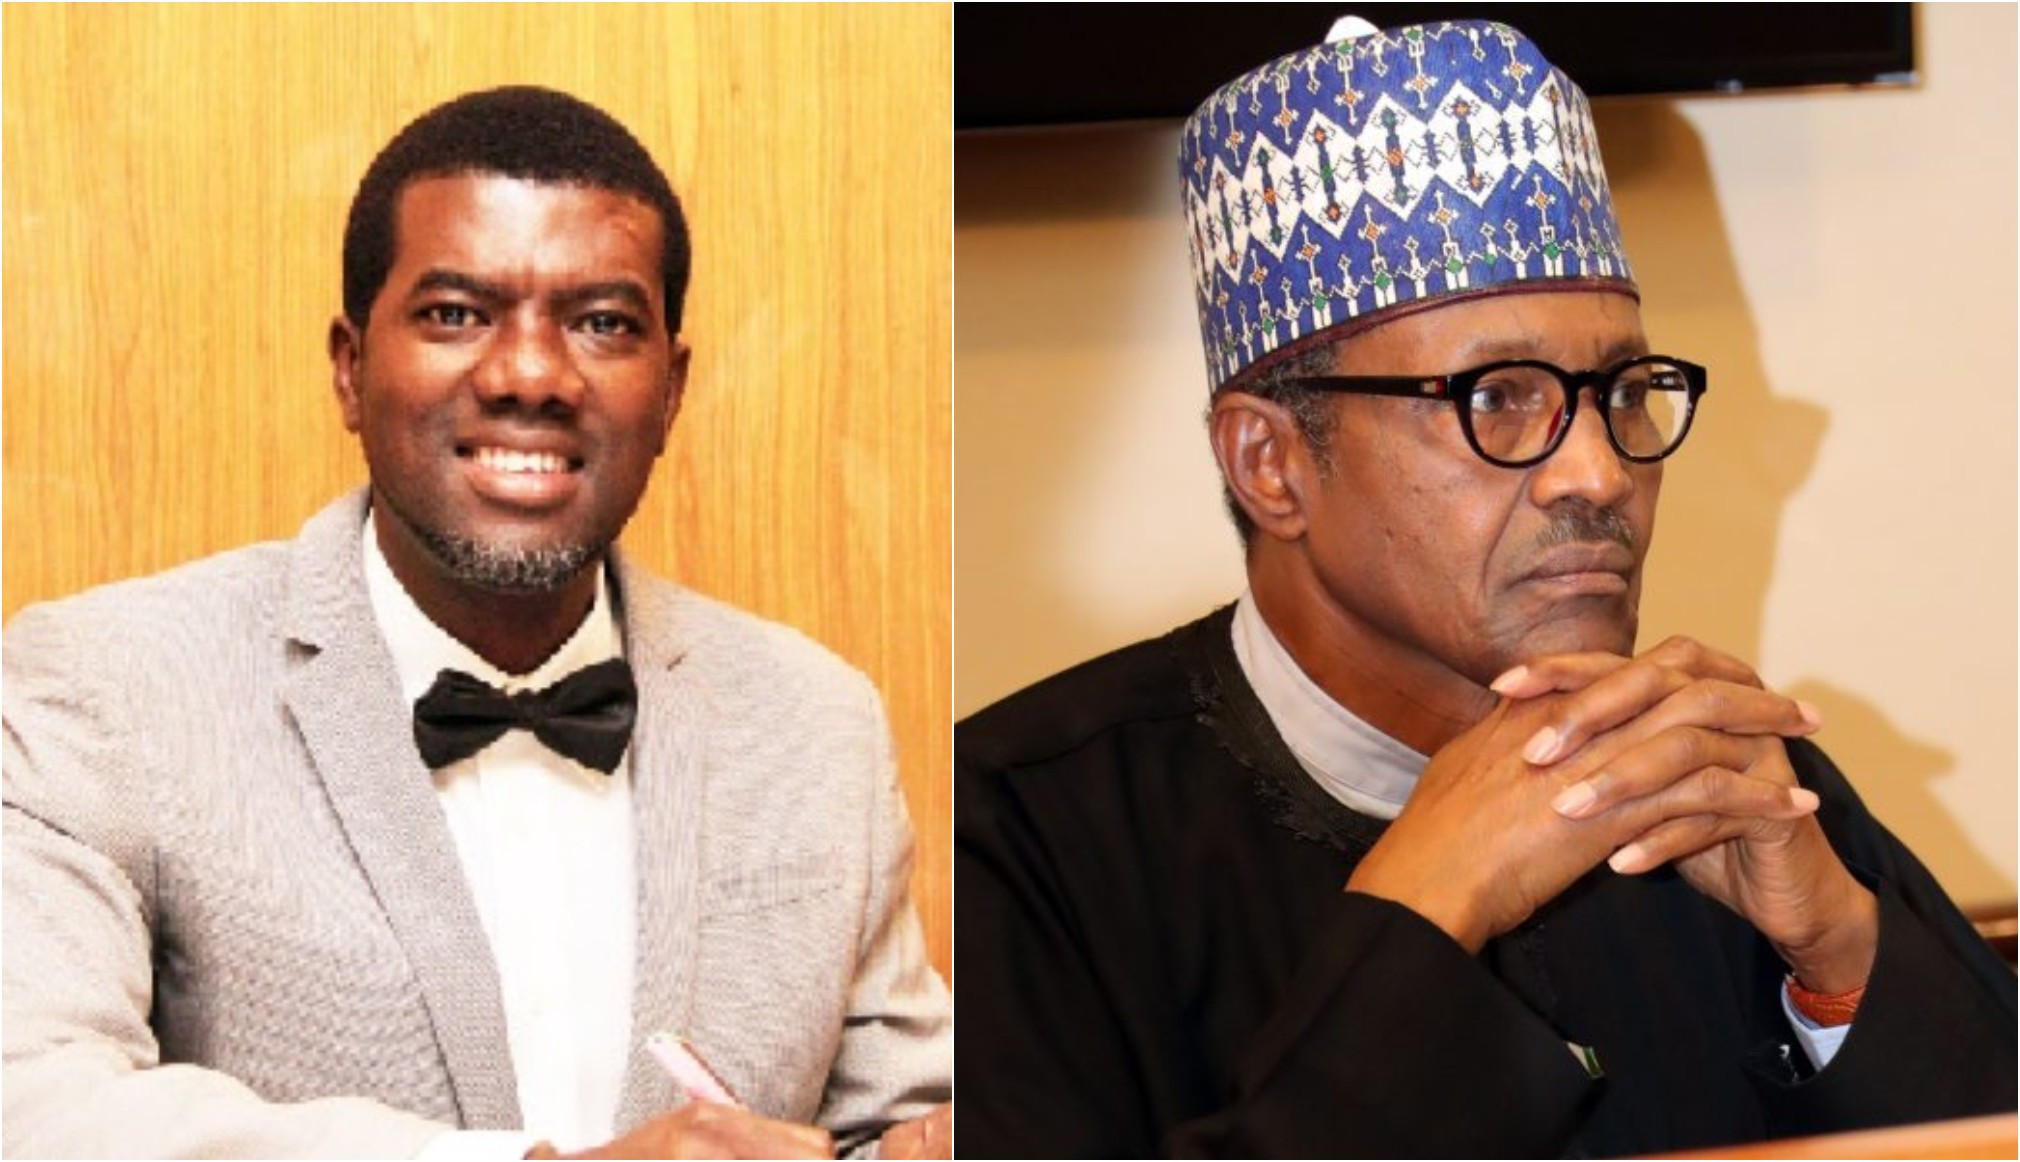 Zahra Buhari and other Nigerian youths who said that looting shows that President Buhari is not the problem are misguided - Reno Omokri